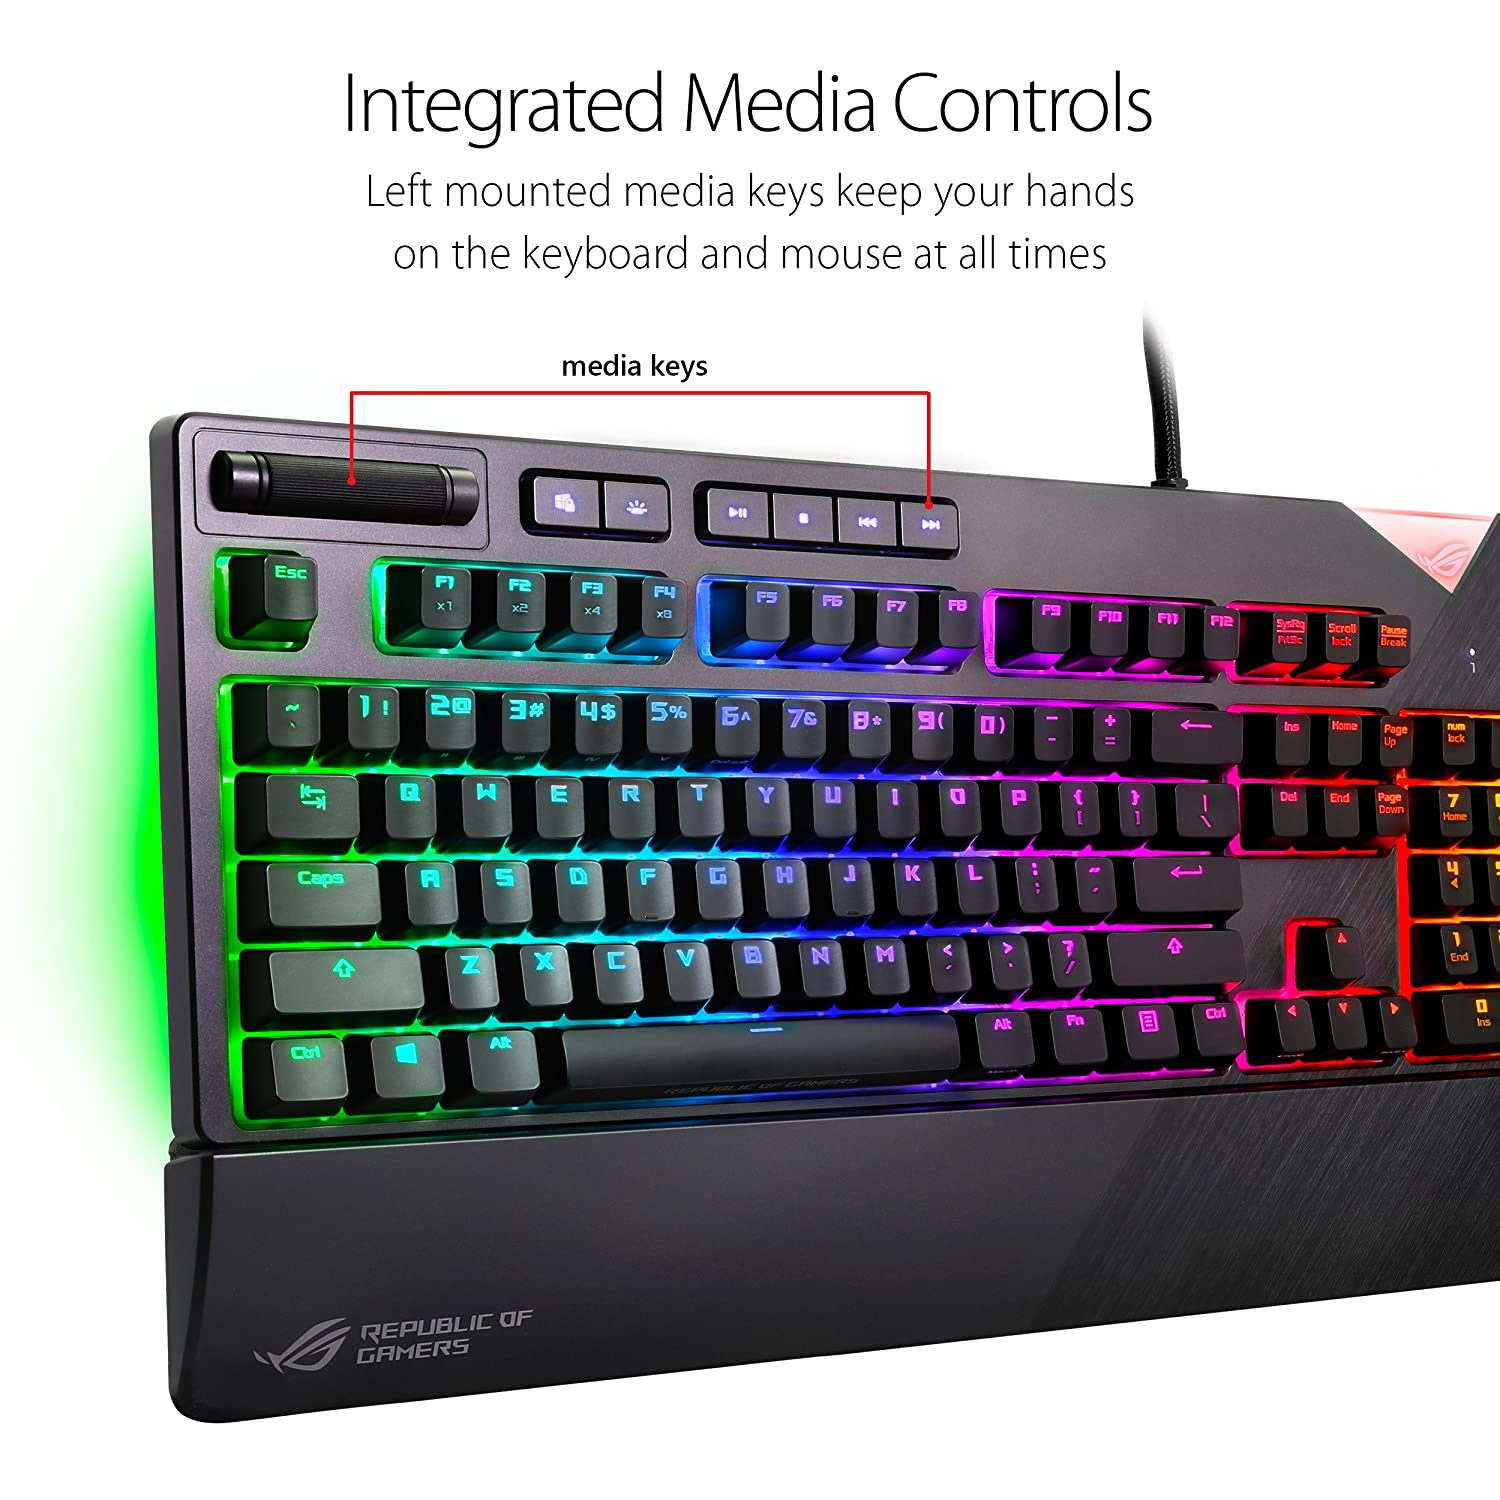 25753e4d828 Amazon.com: ASUS ROG Strix Flare (Cherry MX Red) Aura Sync RGB Mechanical  Gaming Keyboard with Switches, Customizable Badge, USB Pass Through and  Media ...